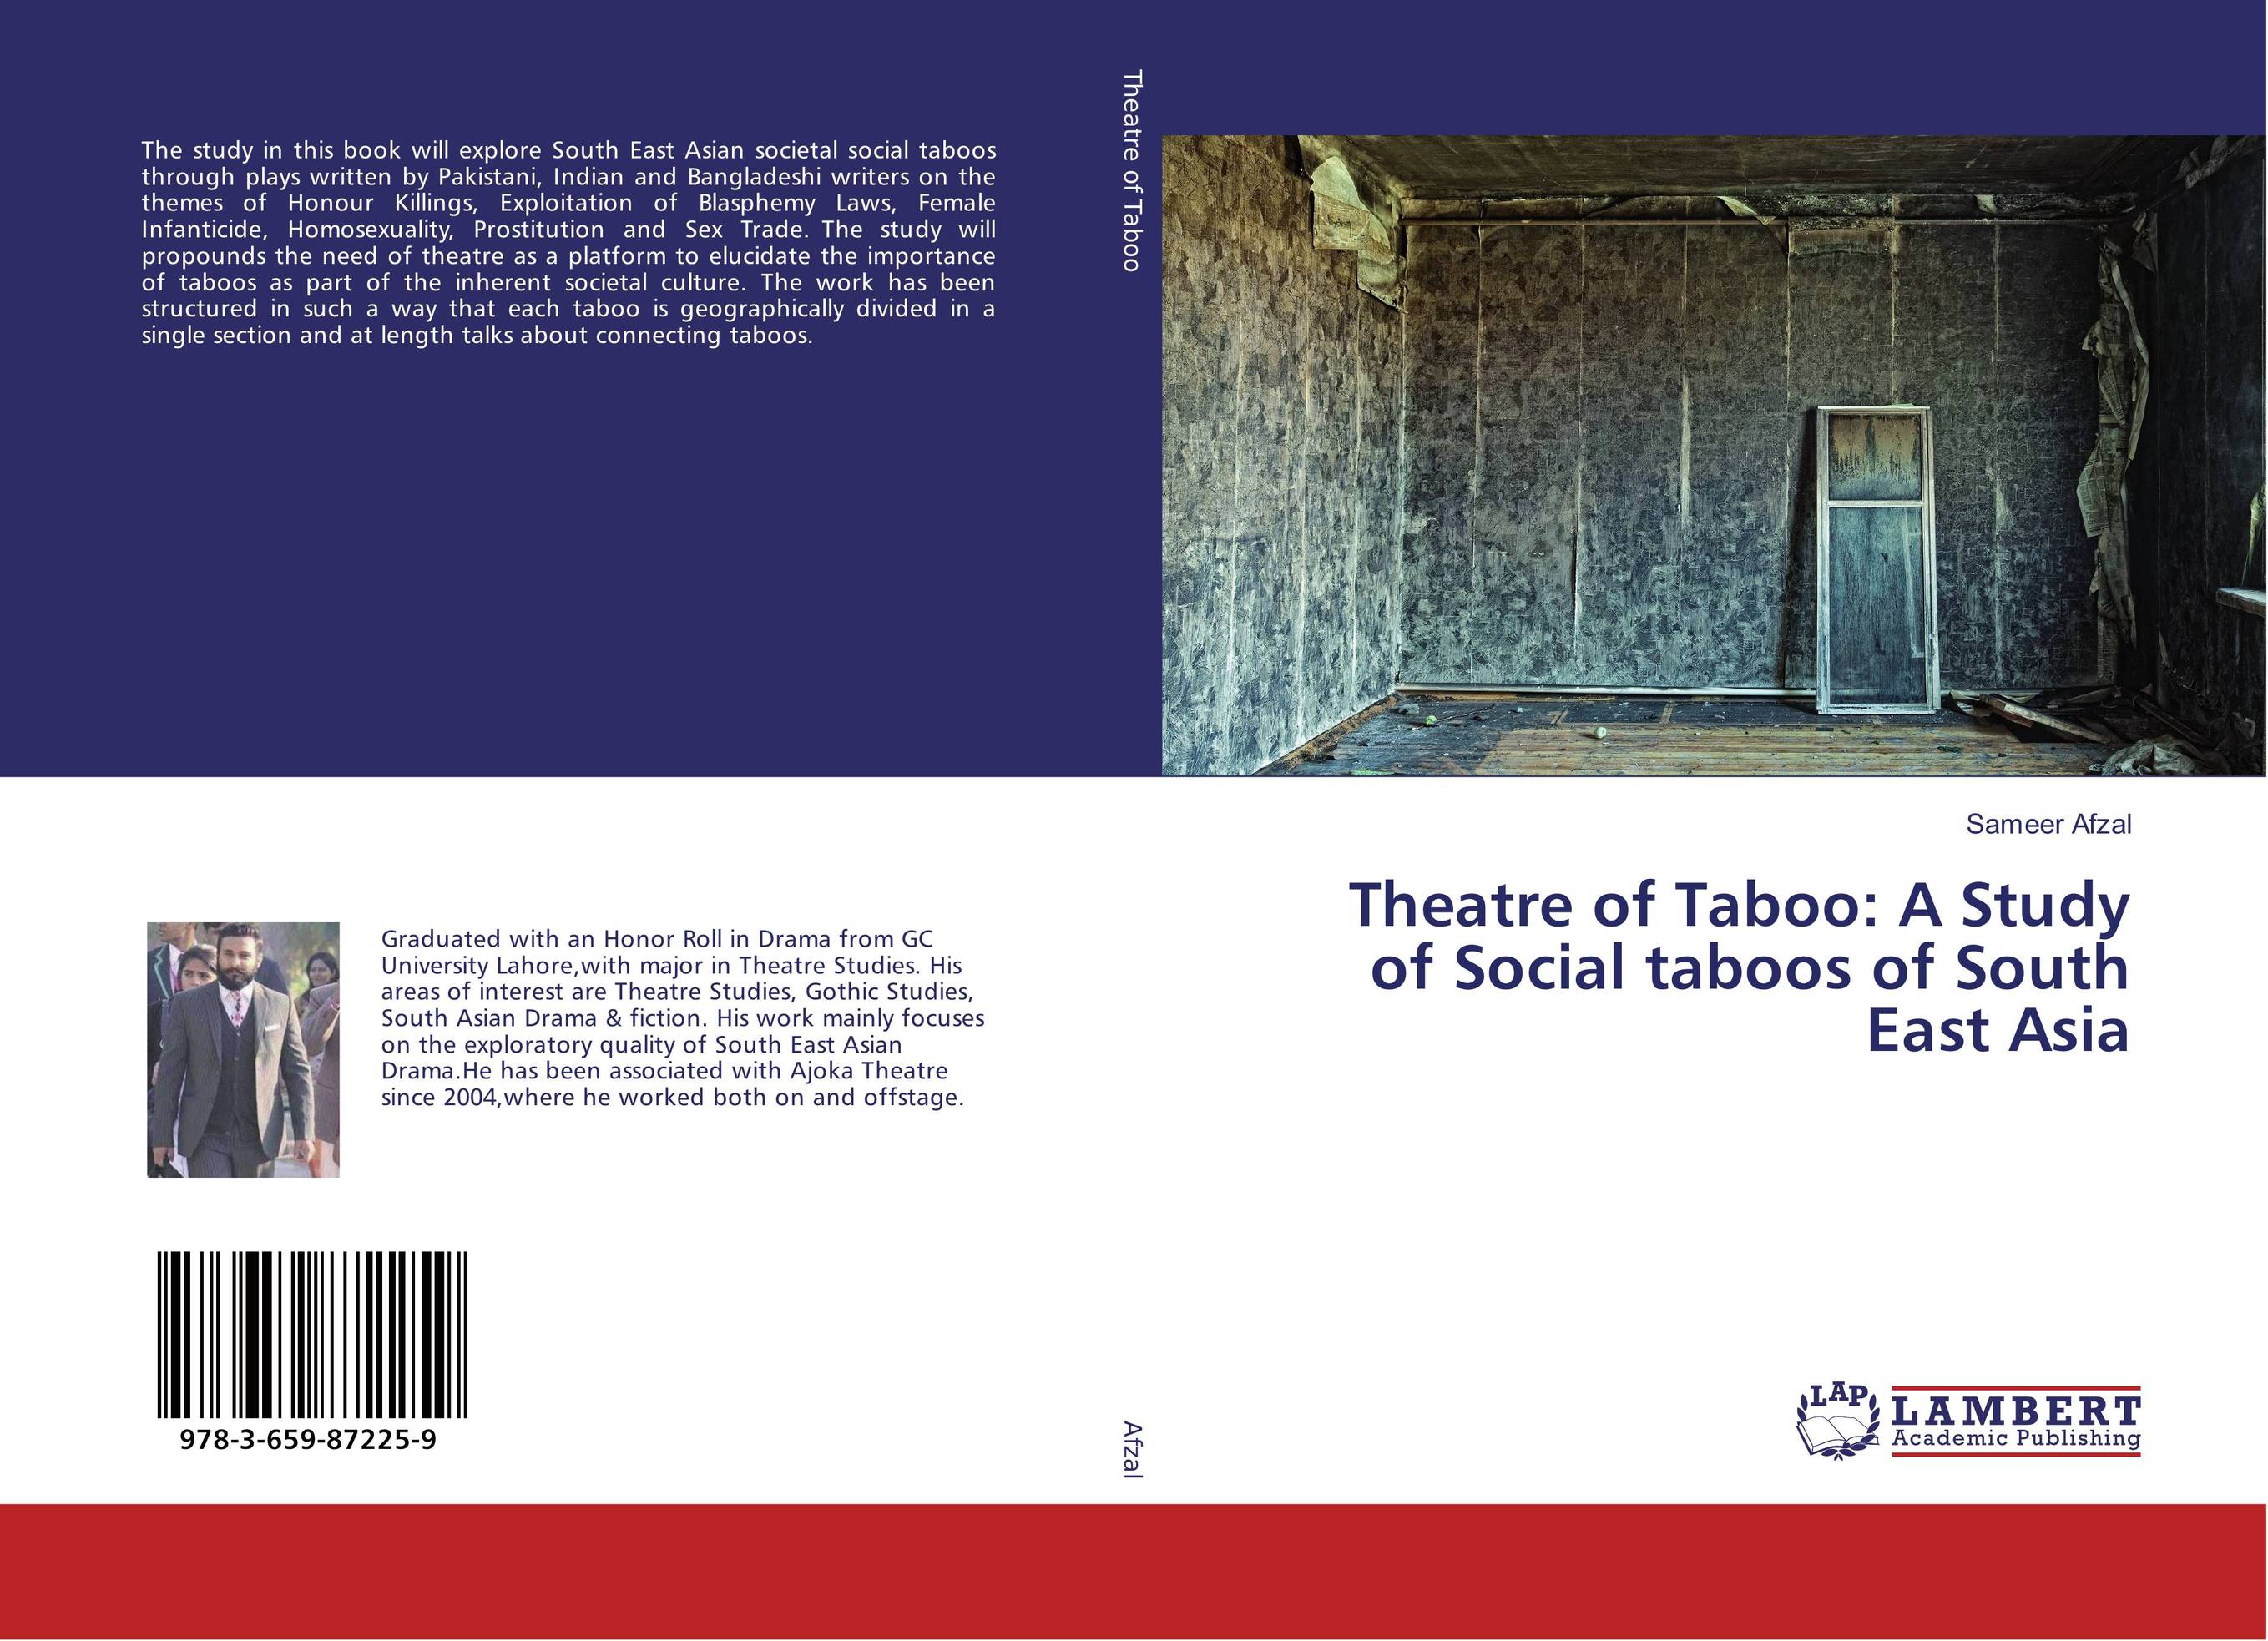 Theatre of Taboo: A Study of Social taboos of South East Asia taboo повседневные брюки